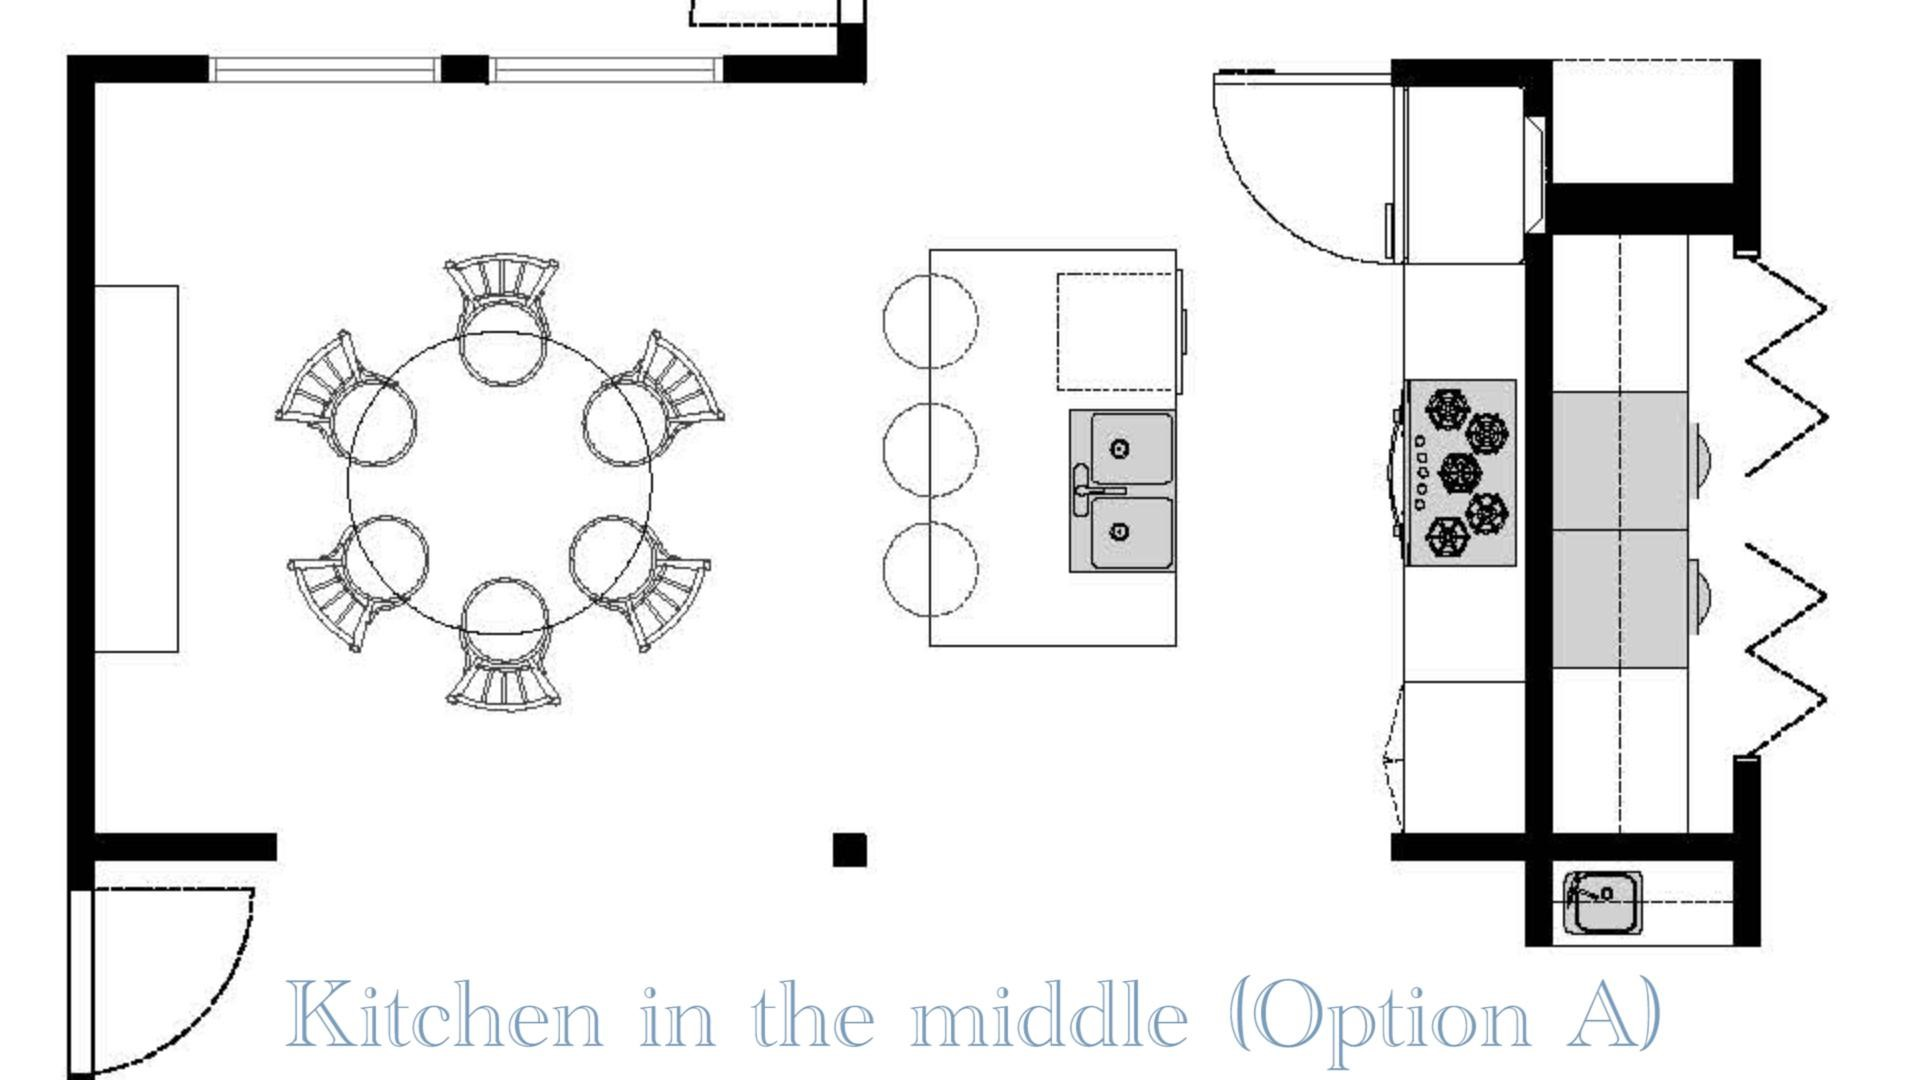 A mockup of the Kitchen In The Middle open concept floor plans design with a beam in the center for stability and removing the wall that blocks the family room.